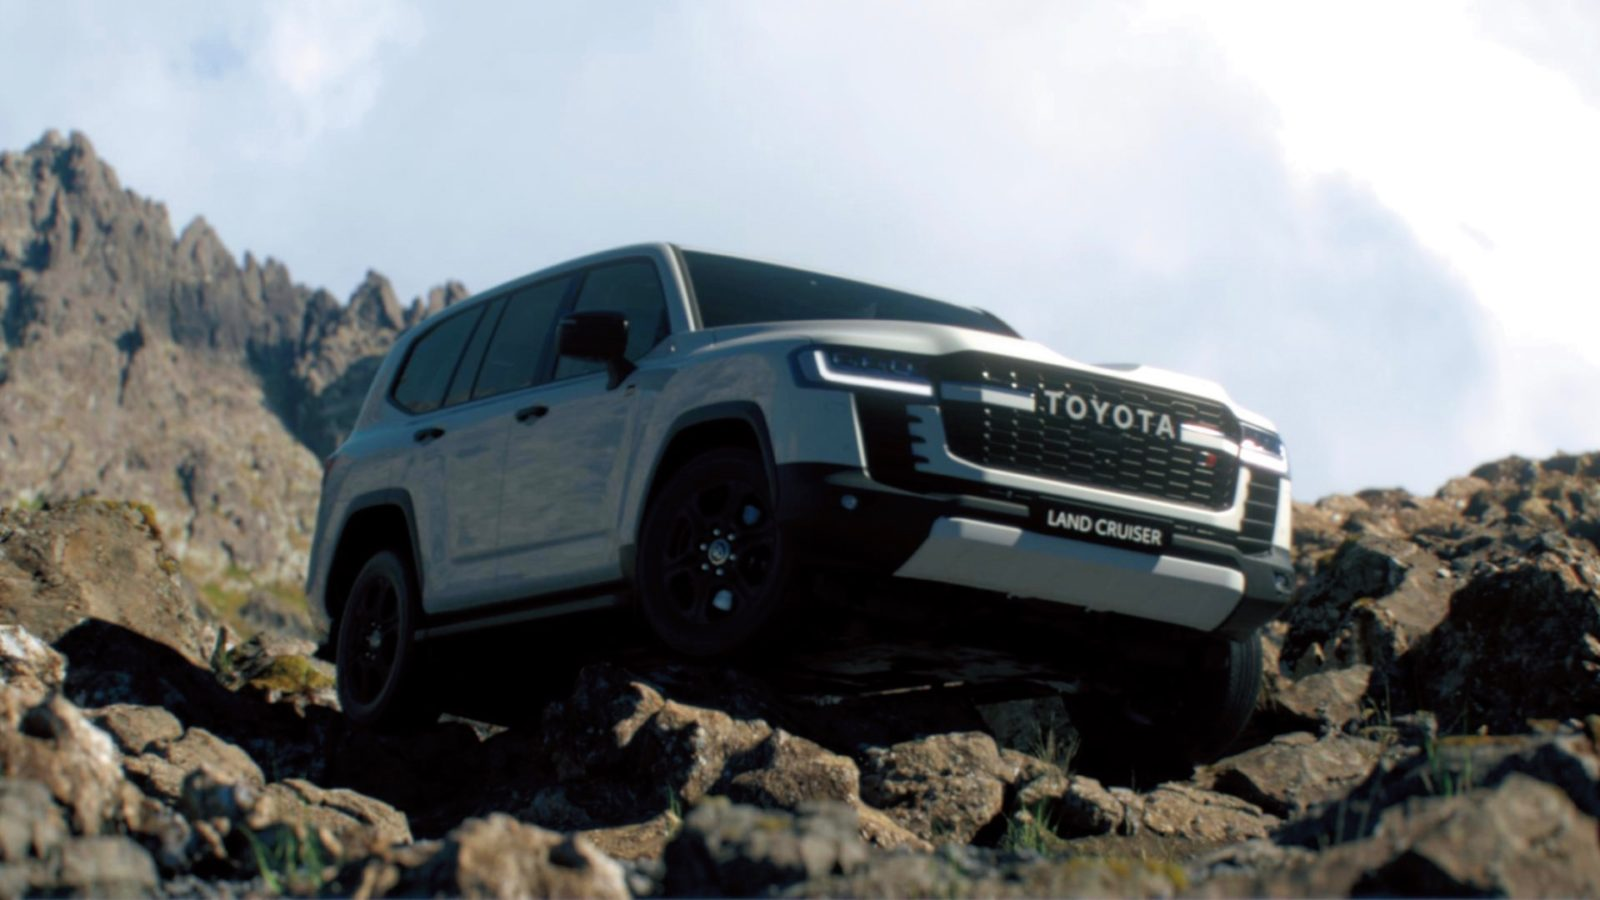 next-gen-toyota-land-cruiser-debuts-with-twin-turbo-v-6,-but-it's-not-coming-to-the-us.